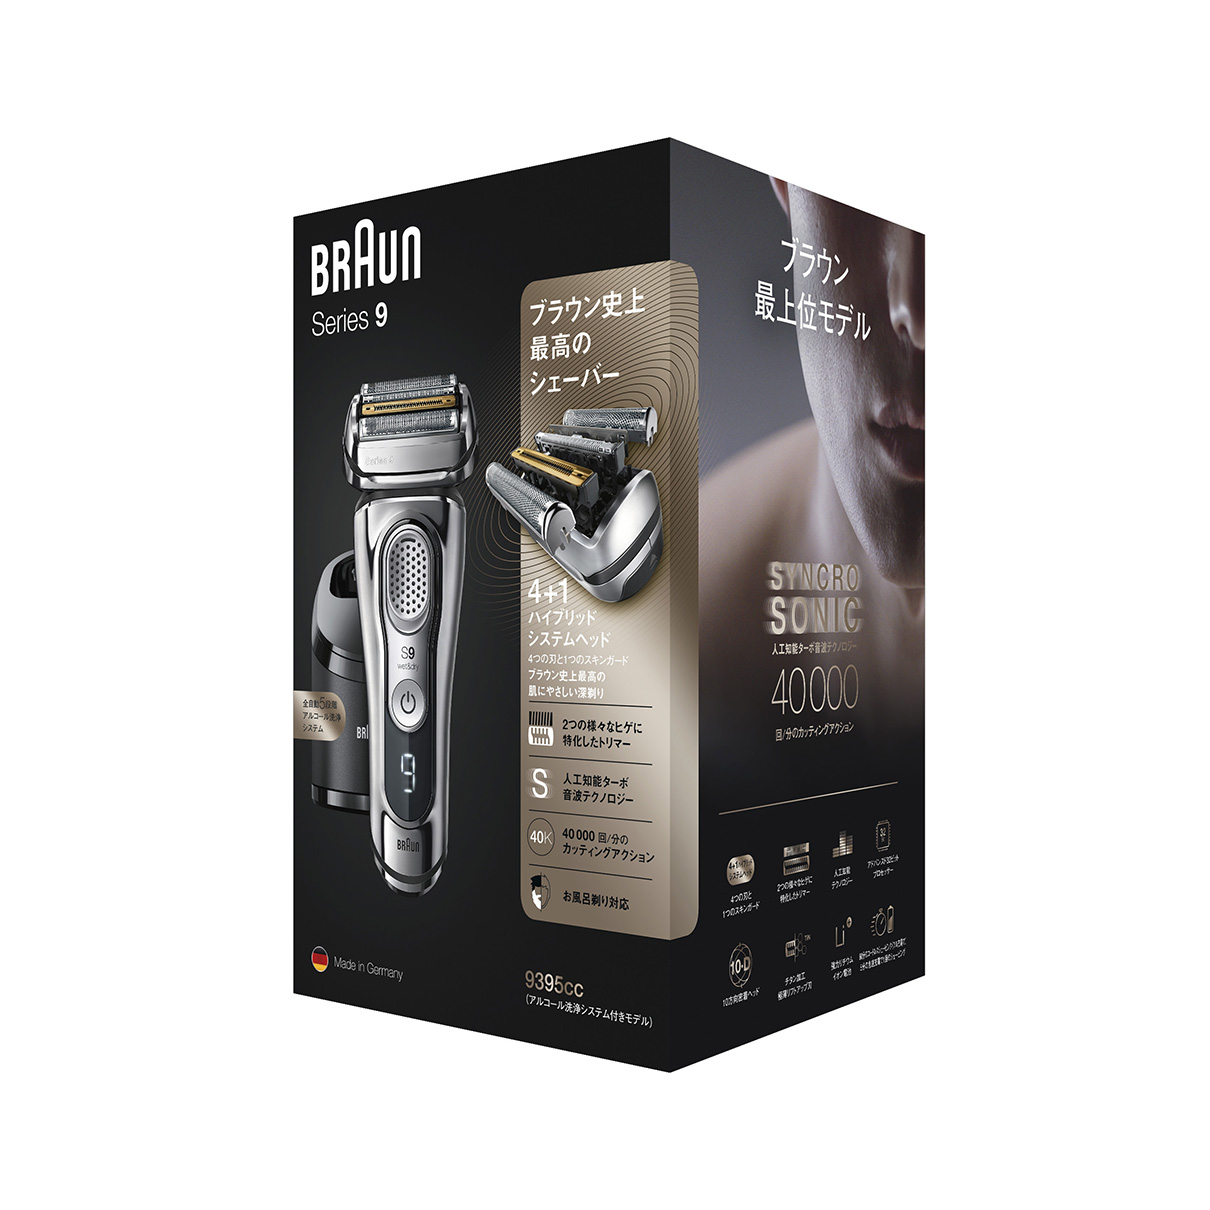 Series 9 9395cc shaver - Packaging